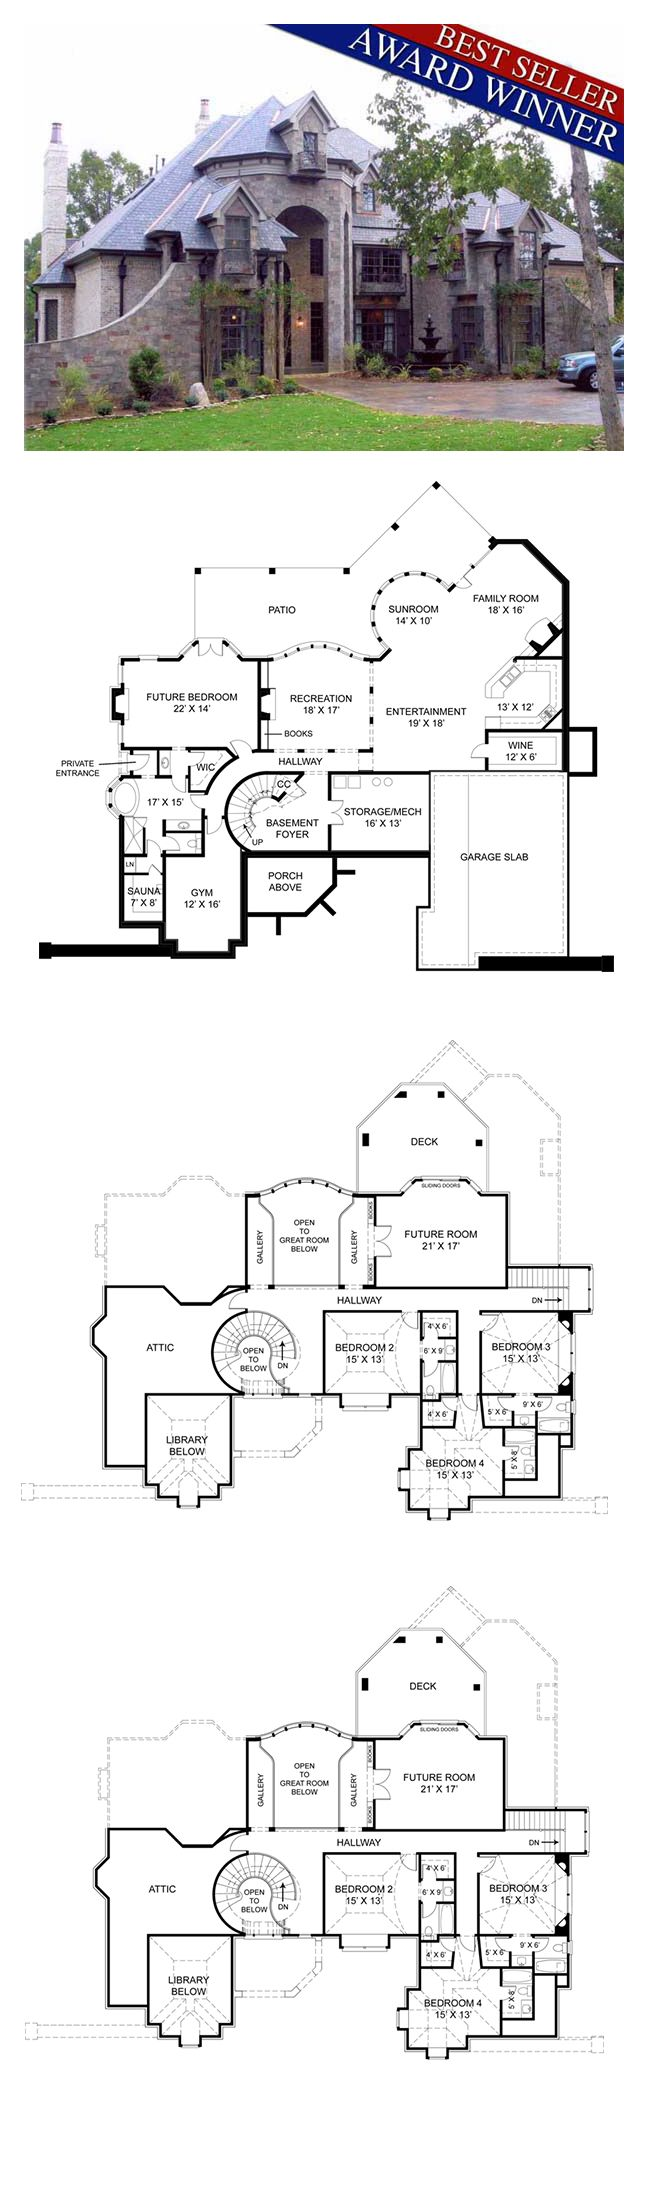 luxury house plan 72201 total living area 4041 sq ft 4